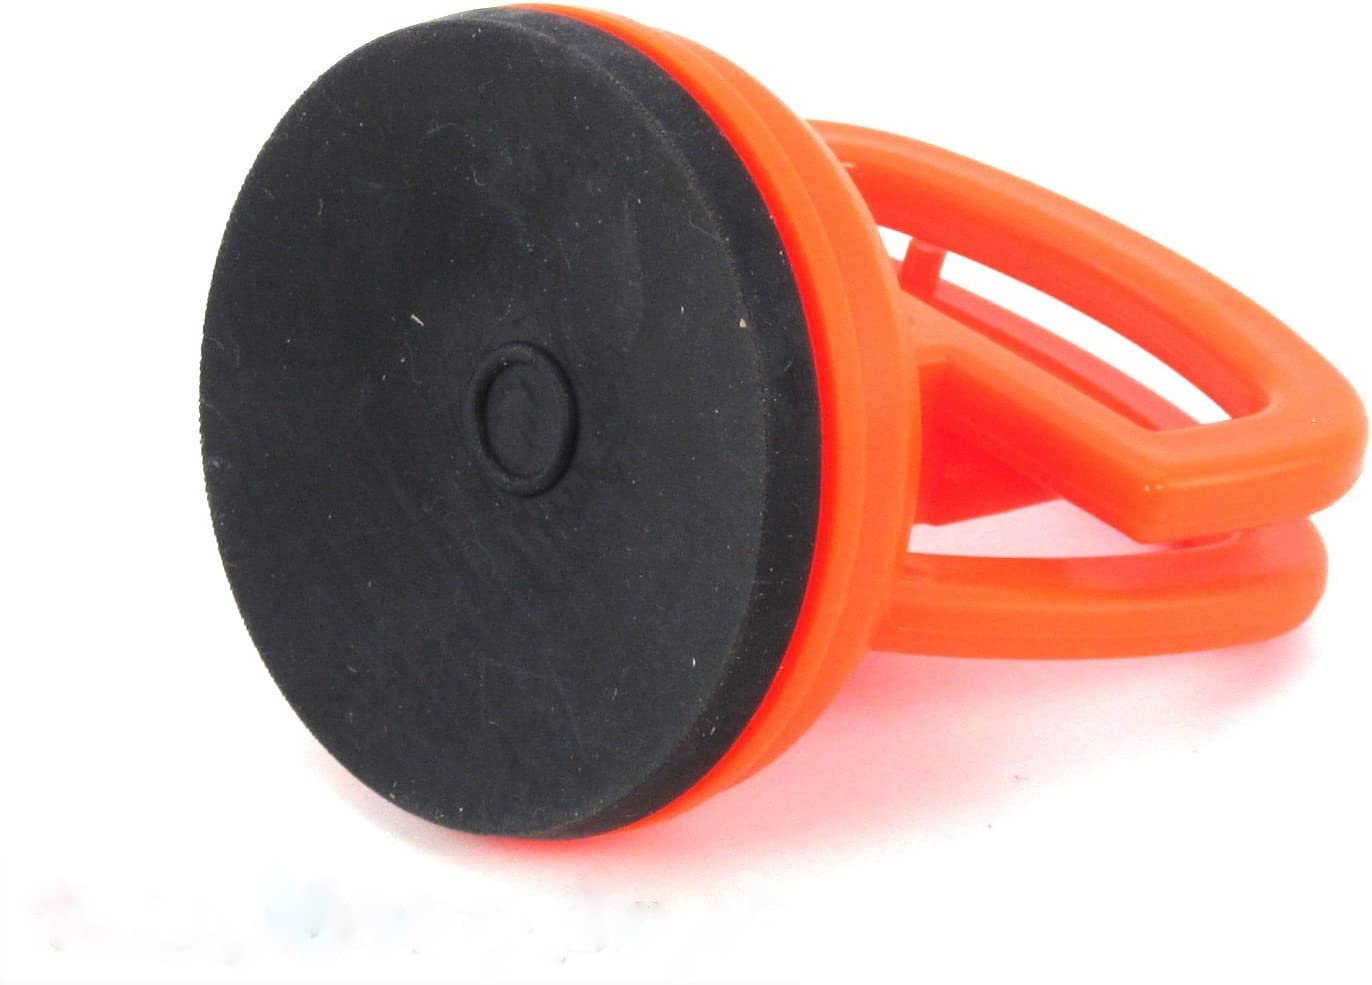 Ram-Pro 2-1//2 Vacuum Suction Cup Dent Puller /& Remover Also Perfect for Lifting Glass Etc Easily /& Painless